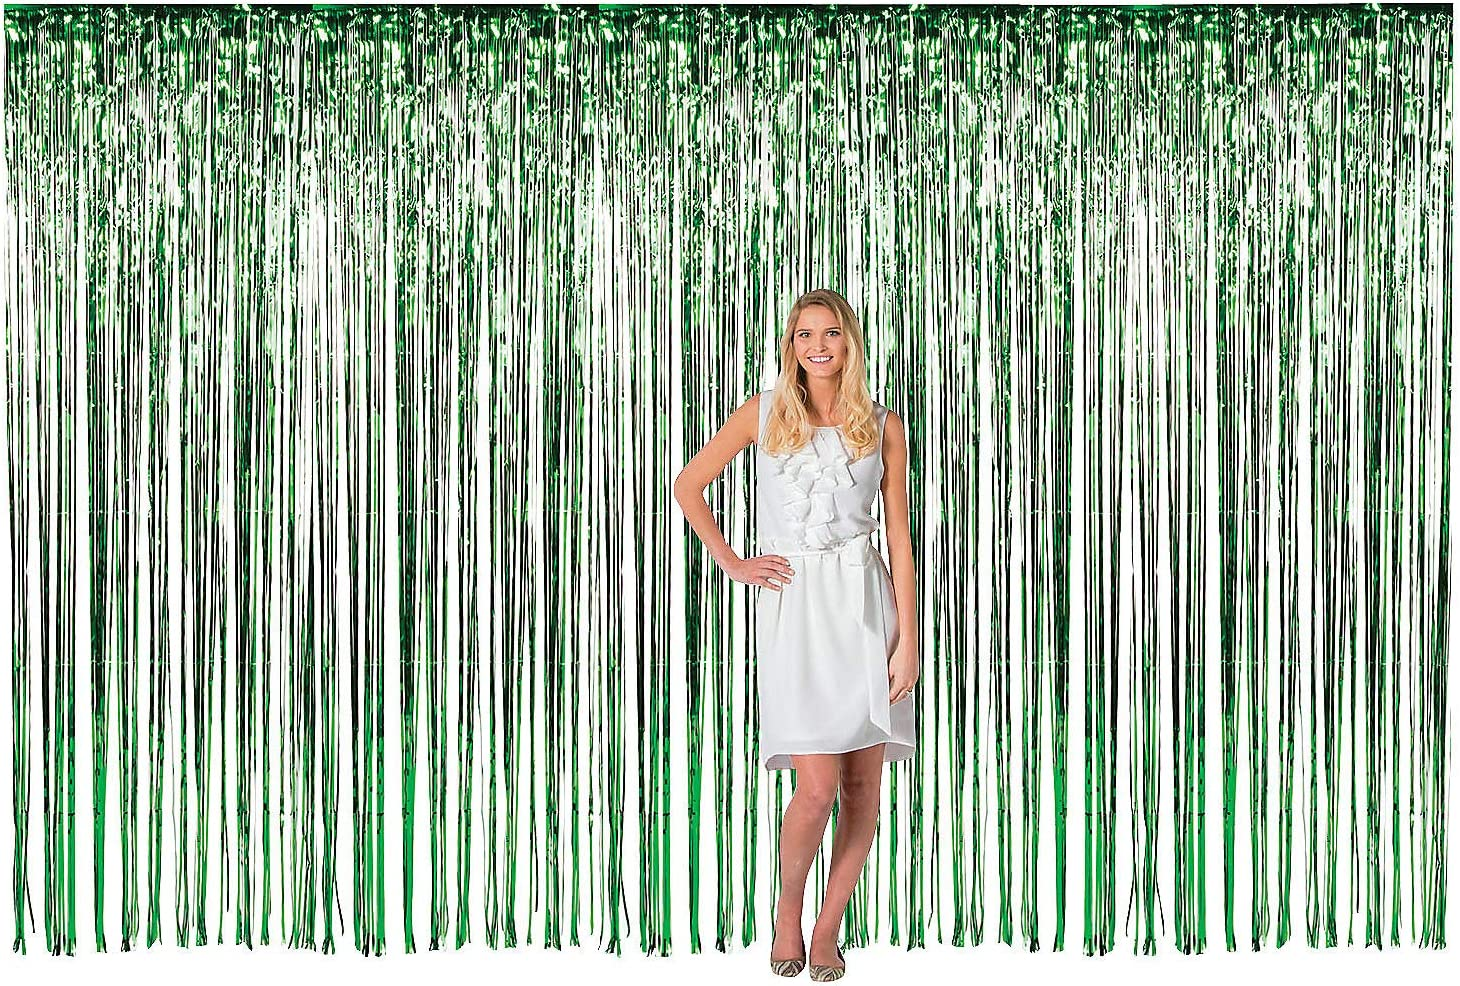 LG GREEN FRINGE DOOR CURTAIN Decor Cheap SALE Start Party 1 - Piece Max 50% OFF